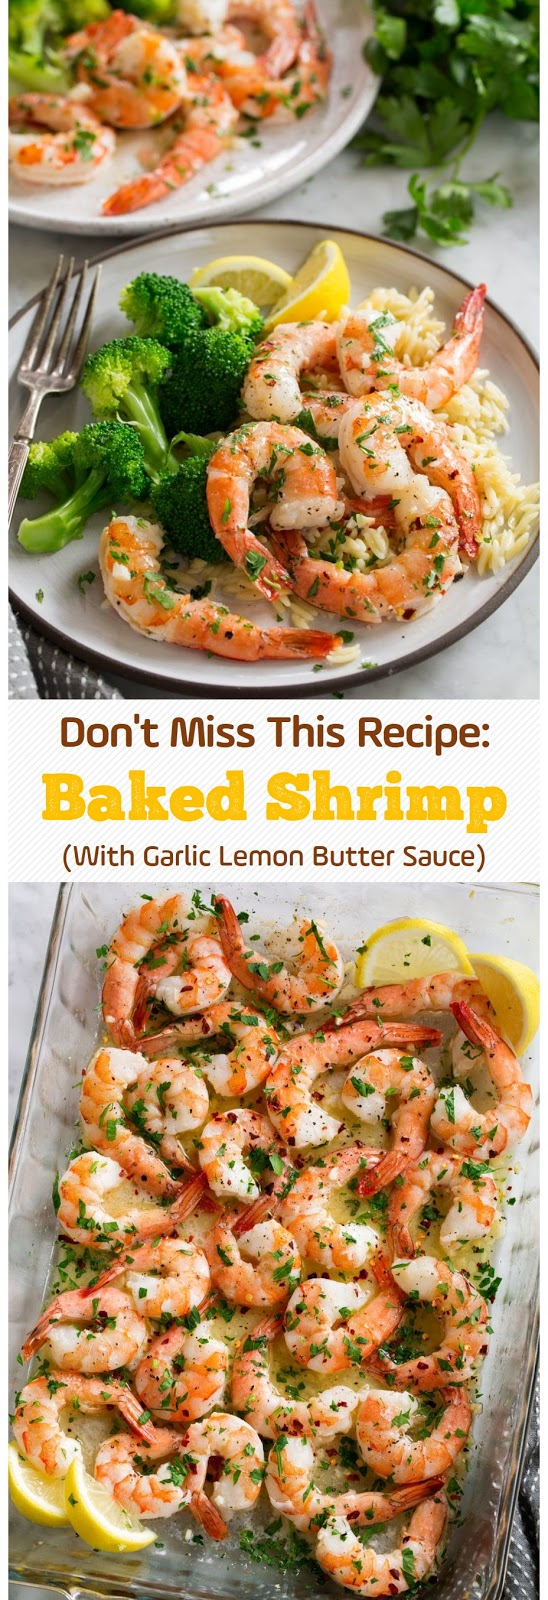 Don't Miss This Baked Shrimp Recipe